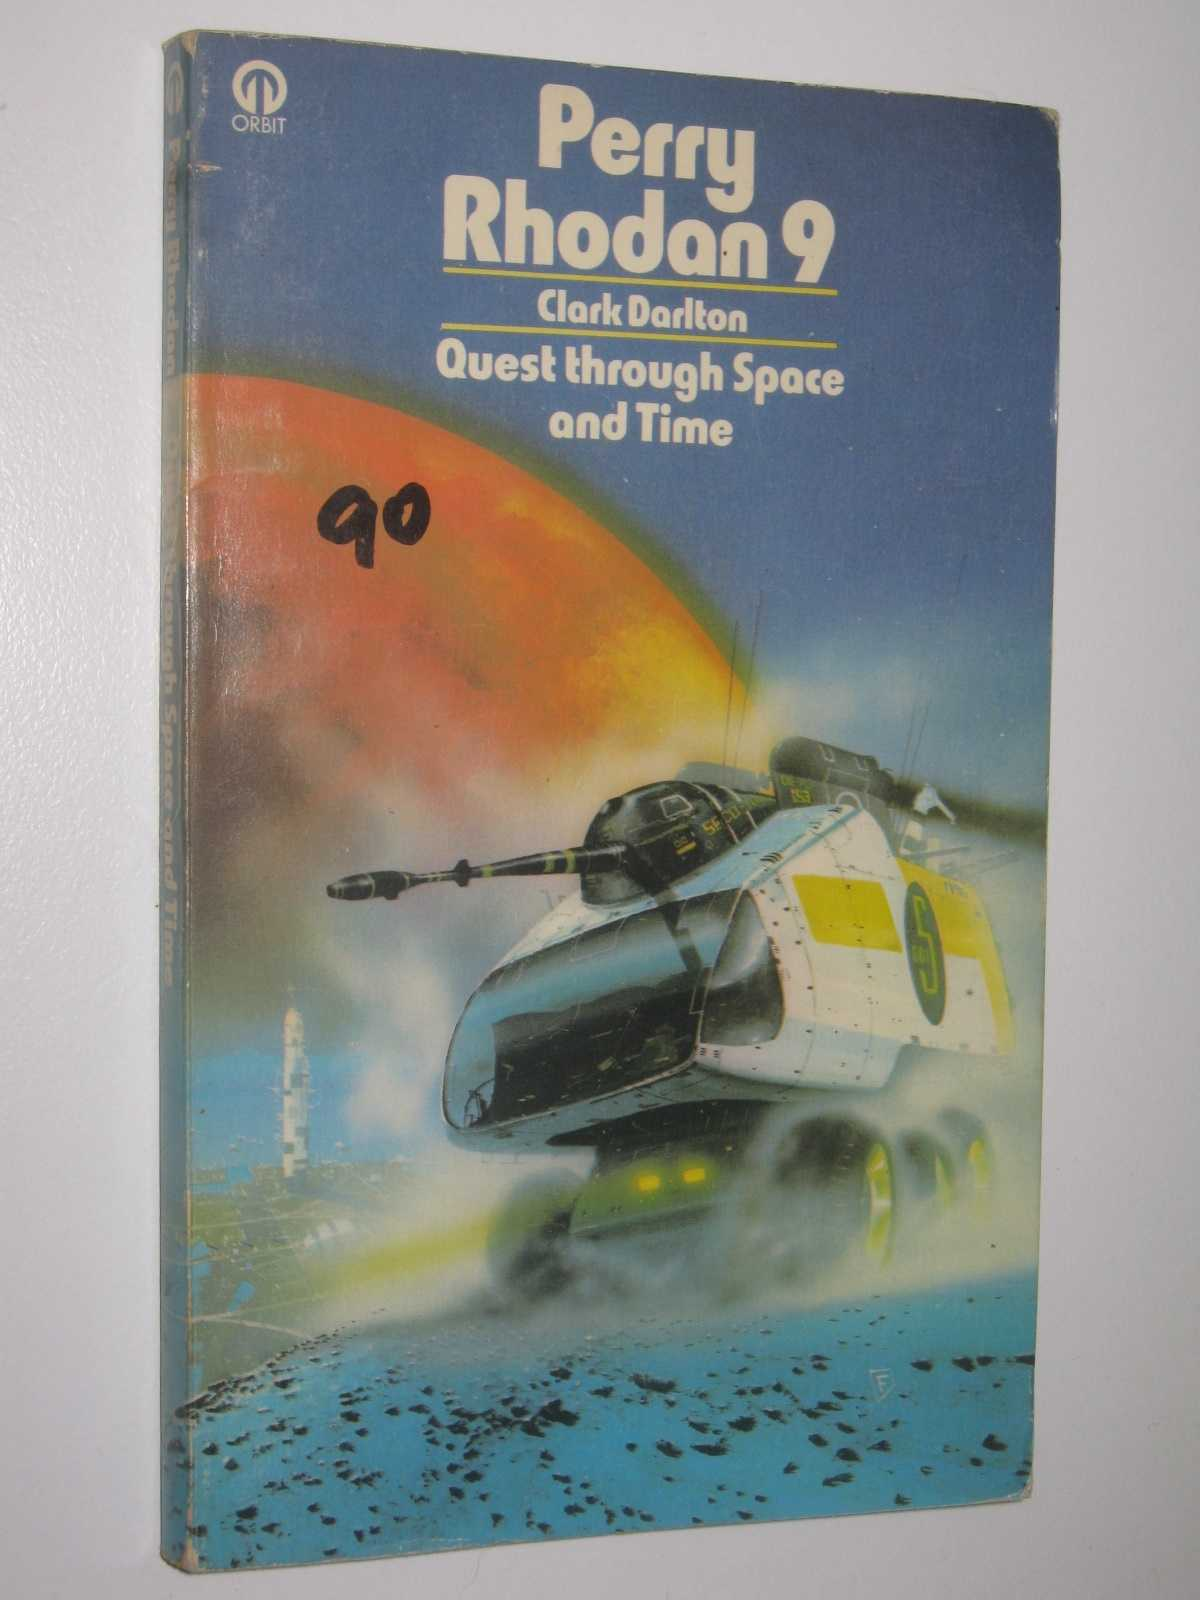 Quest Through Space and Time - Perry Rhodan #9, Darlton, Clark